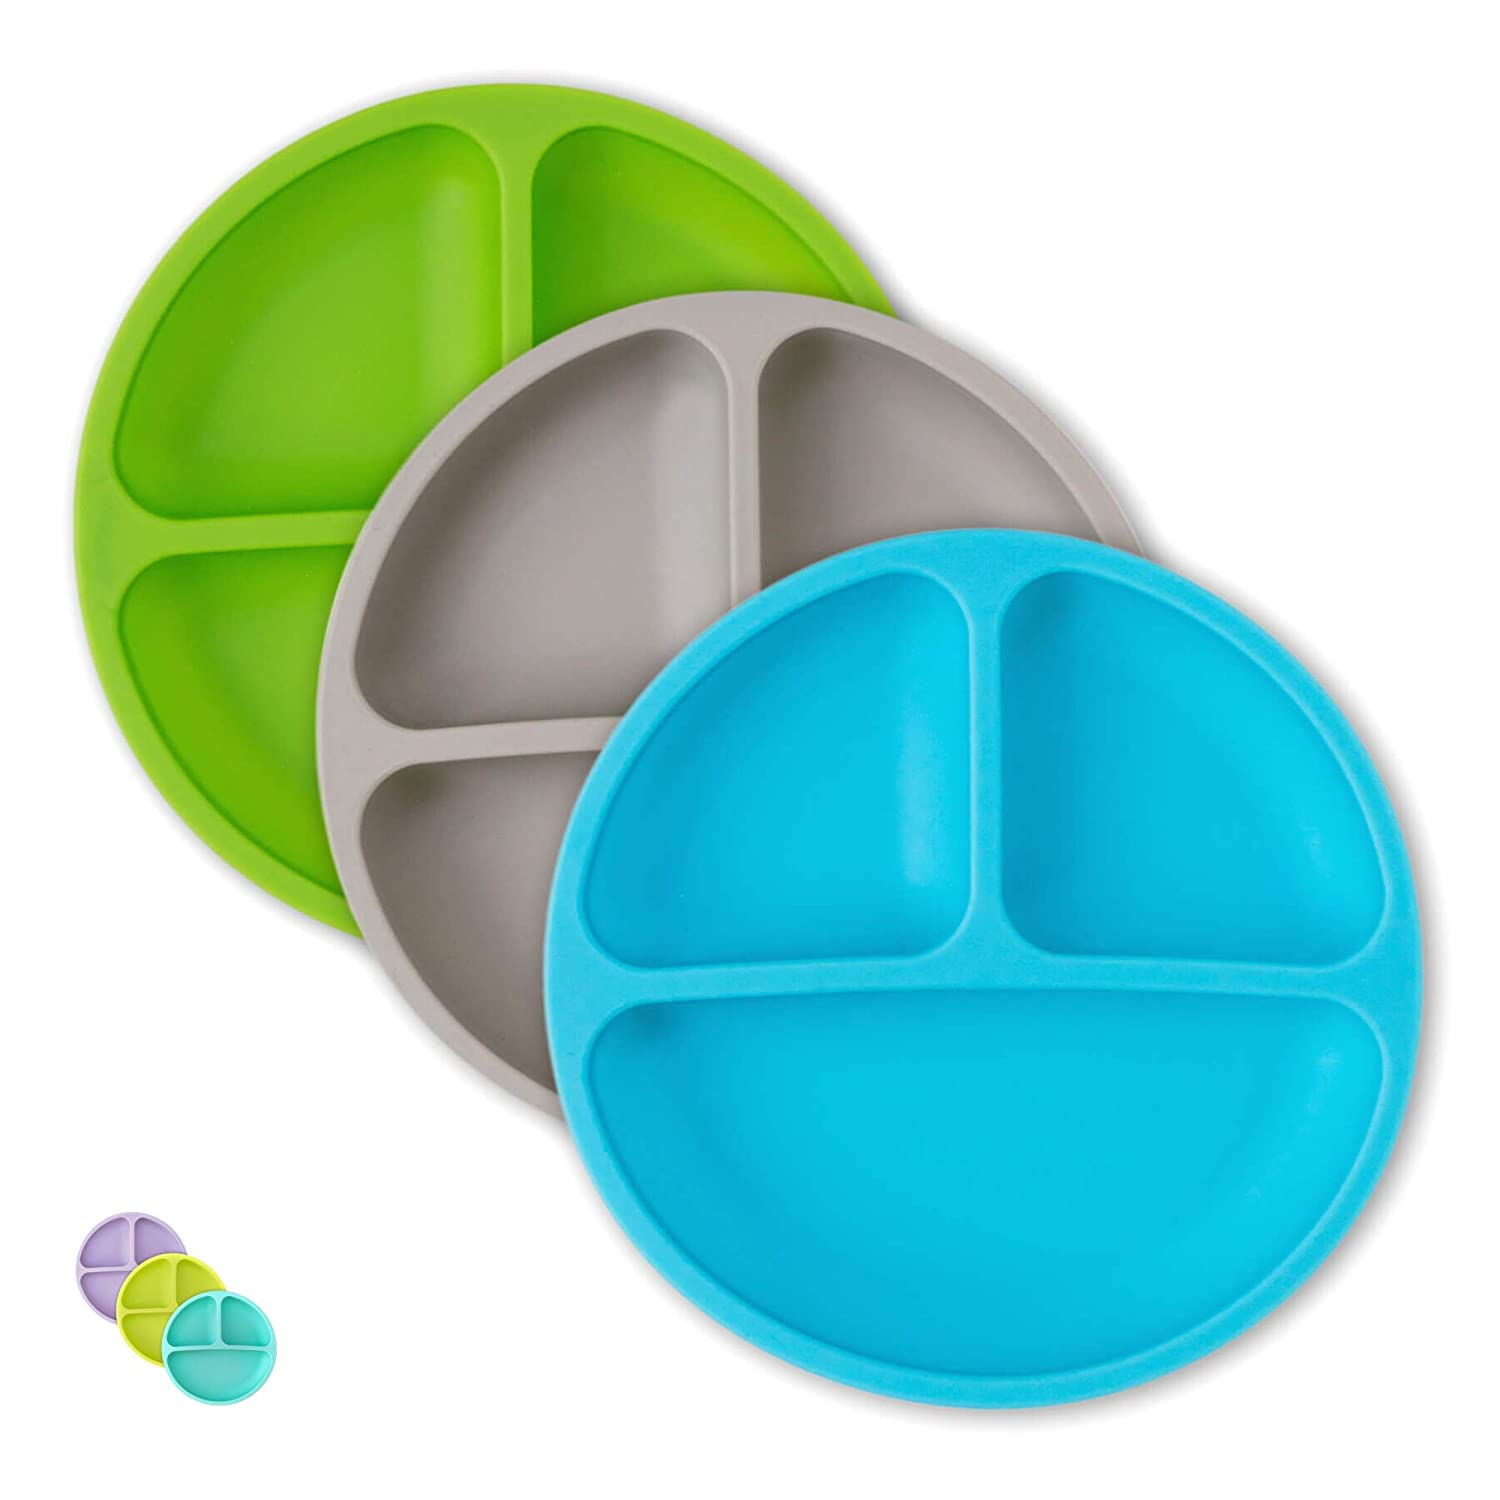 Kids Plates - Toddler Plates - Silicone Plate with Dividers for Baby  Kids   Toddlers  Blue Gray Green